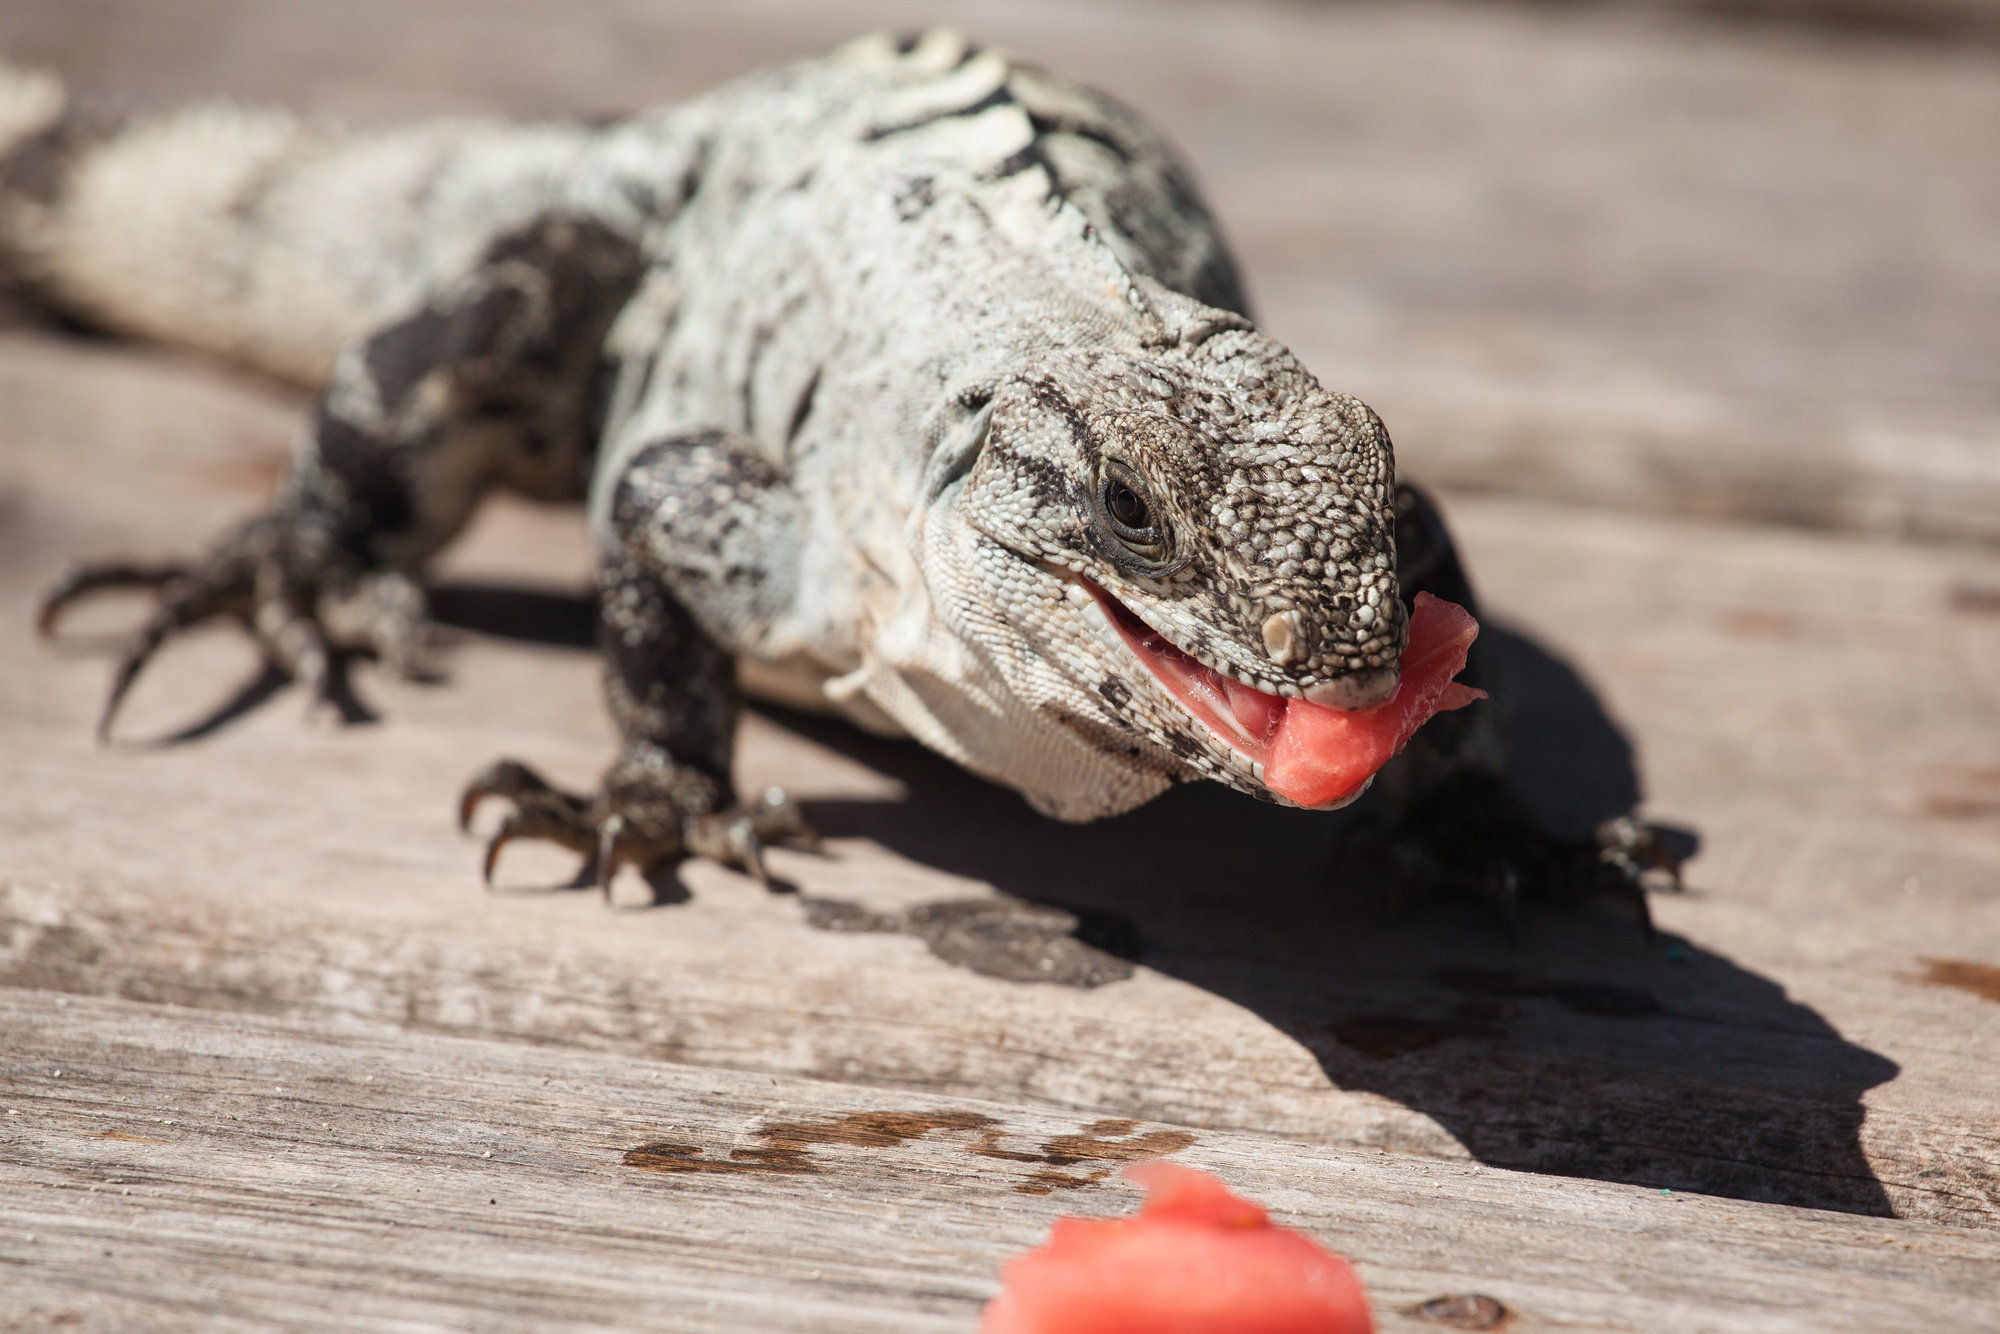 And resident iguana 'Stella' prowls for watermelon.